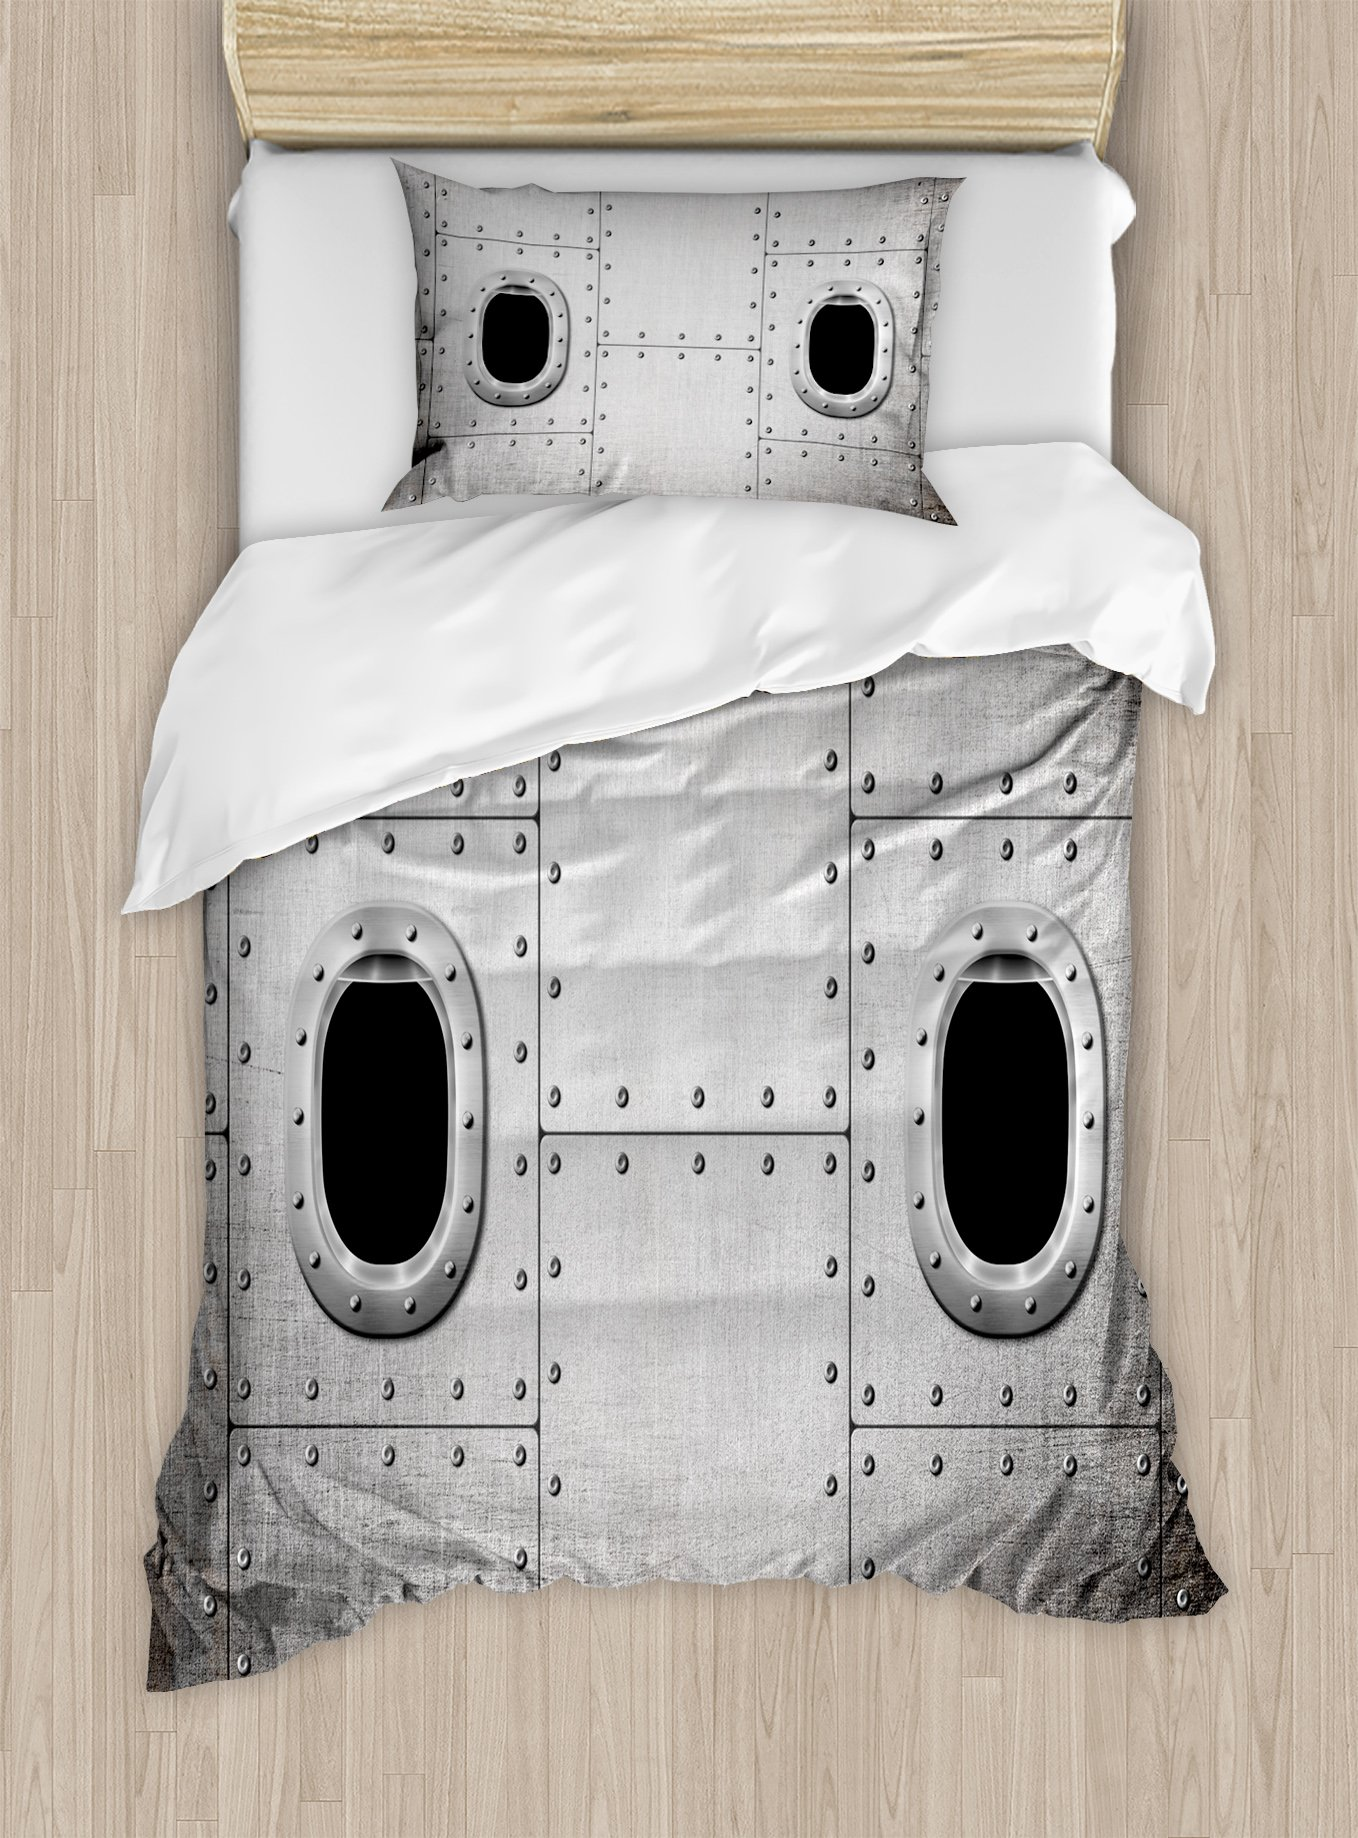 Ambesonne Vintage Airplane Duvet Cover Set Twin Size, Airplane Windows Close up Image Detailed Steampunk Style Illustration, Decorative 2 Piece Bedding Set with 1 Pillow Sham, Grey Black